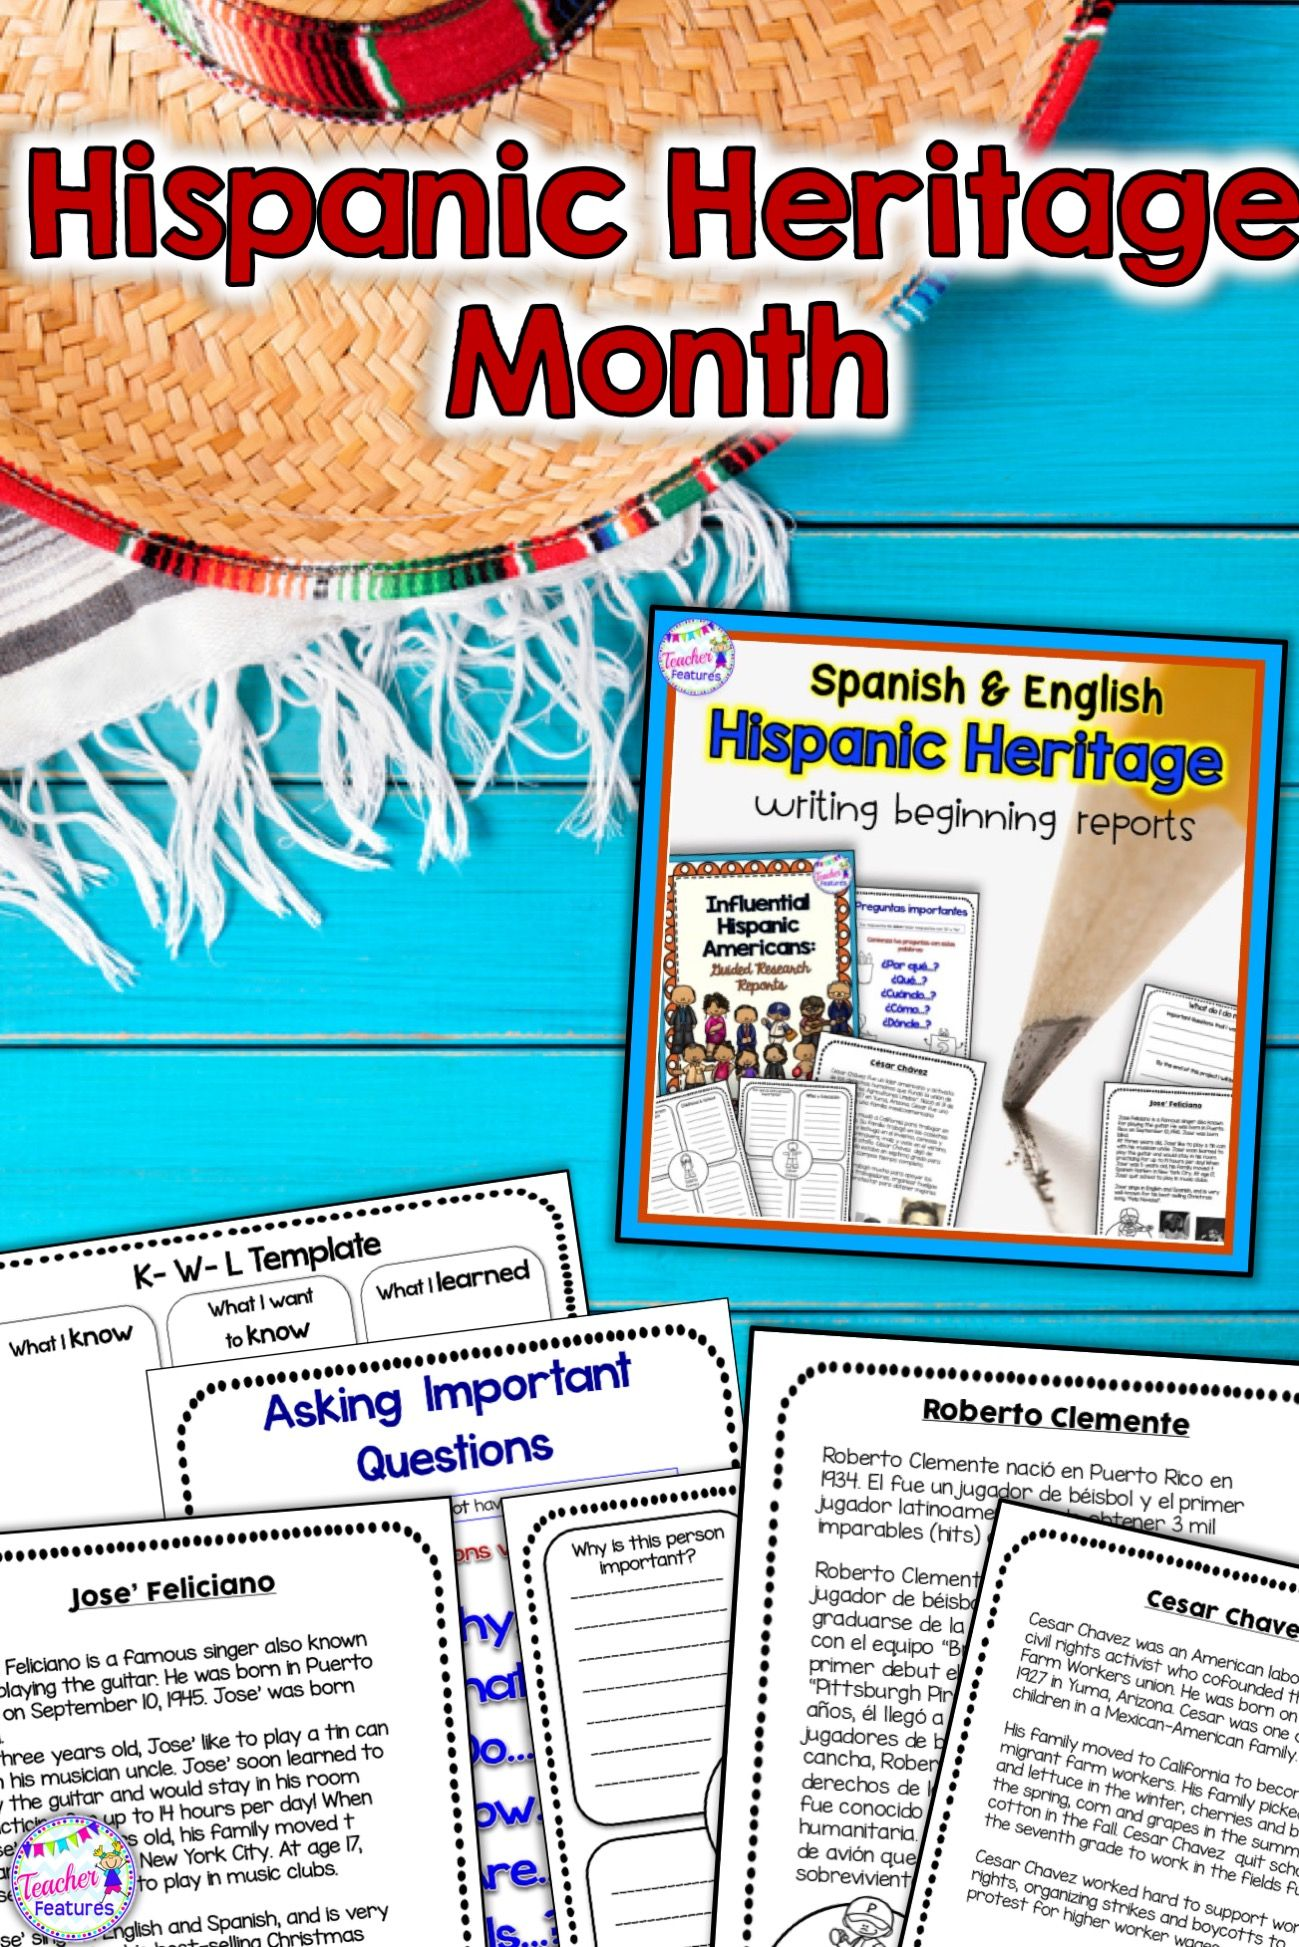 Hispanic Heritage Month | Hispanic Hertage Month Activities ...